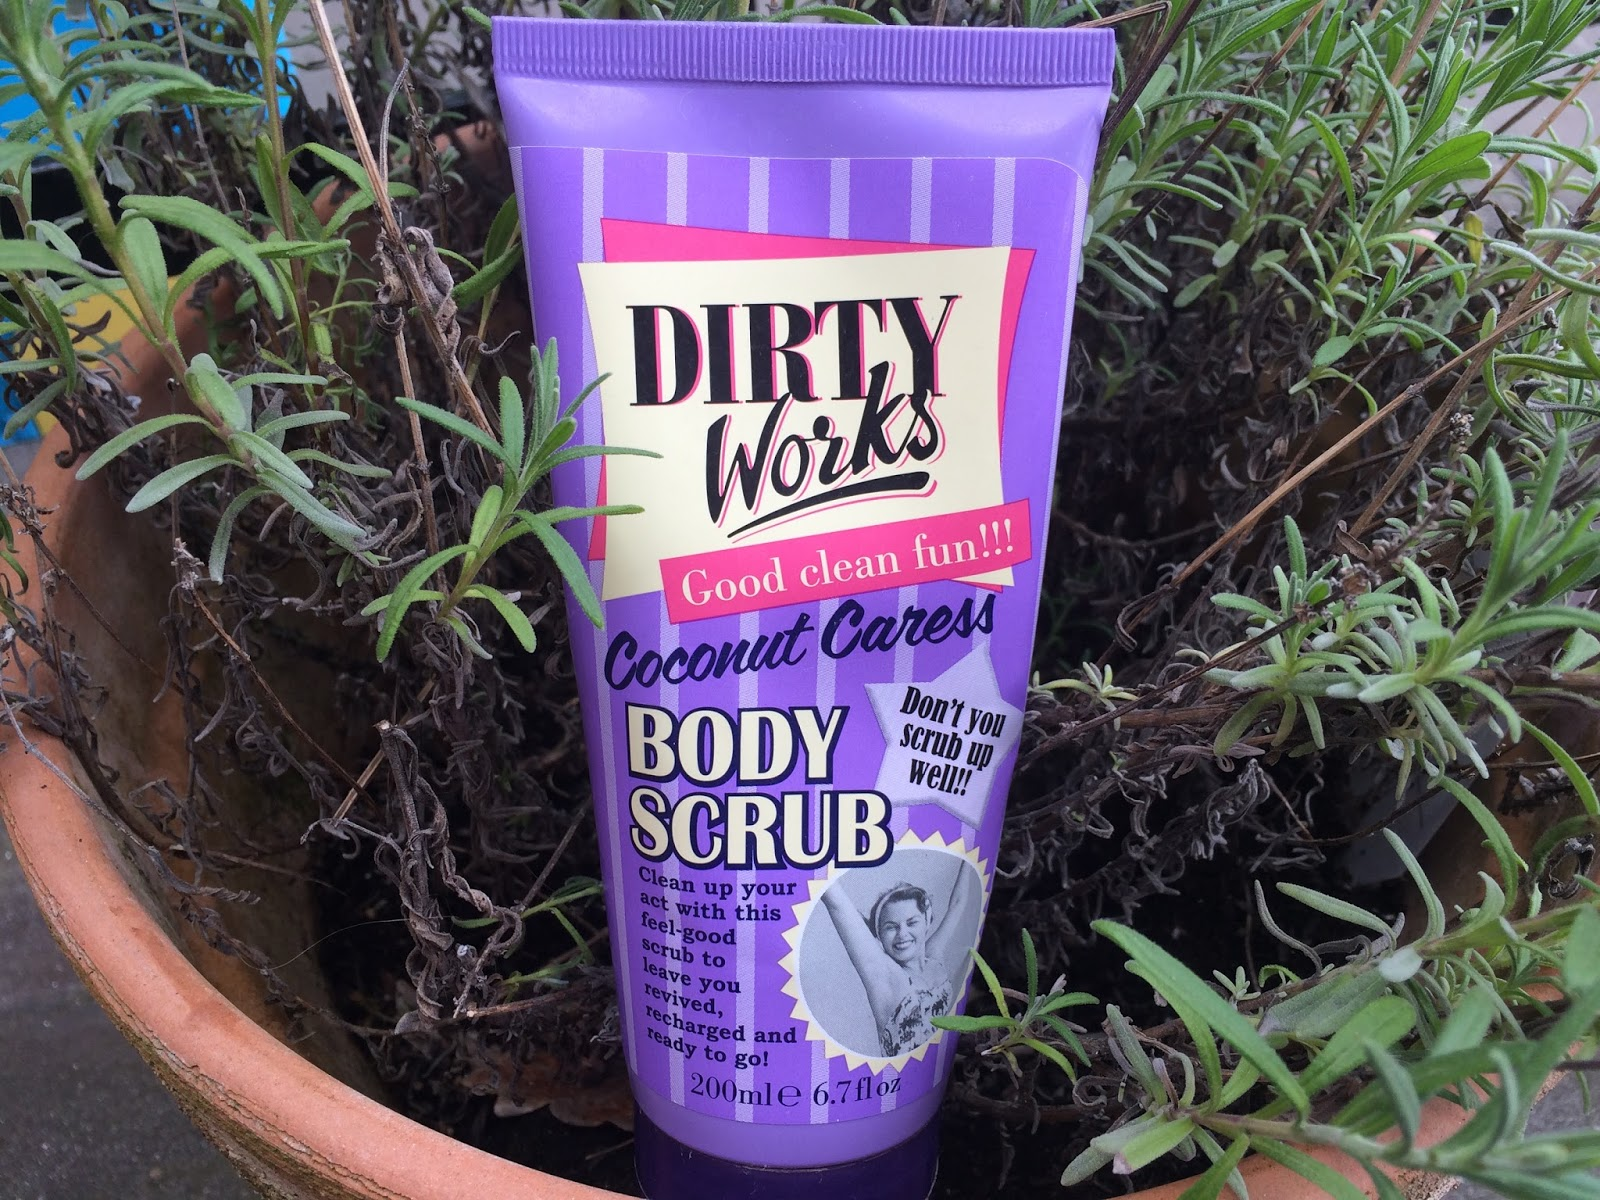 Dirty Works Coconut Caress Body Scrub